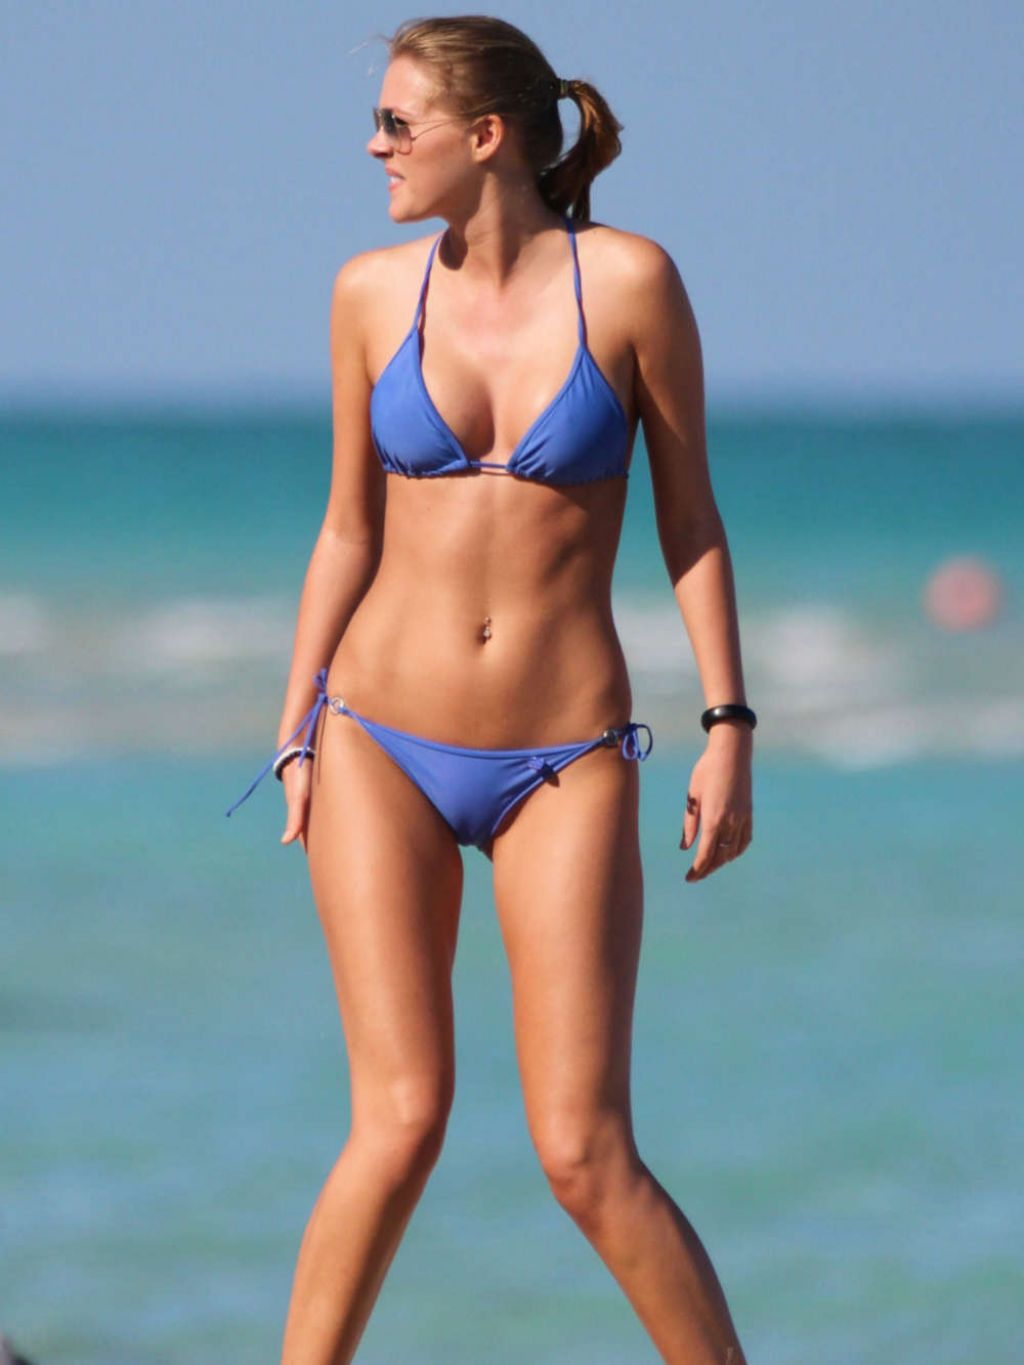 Deimante Guobyte in Blue Bikini - Miami, March 2014